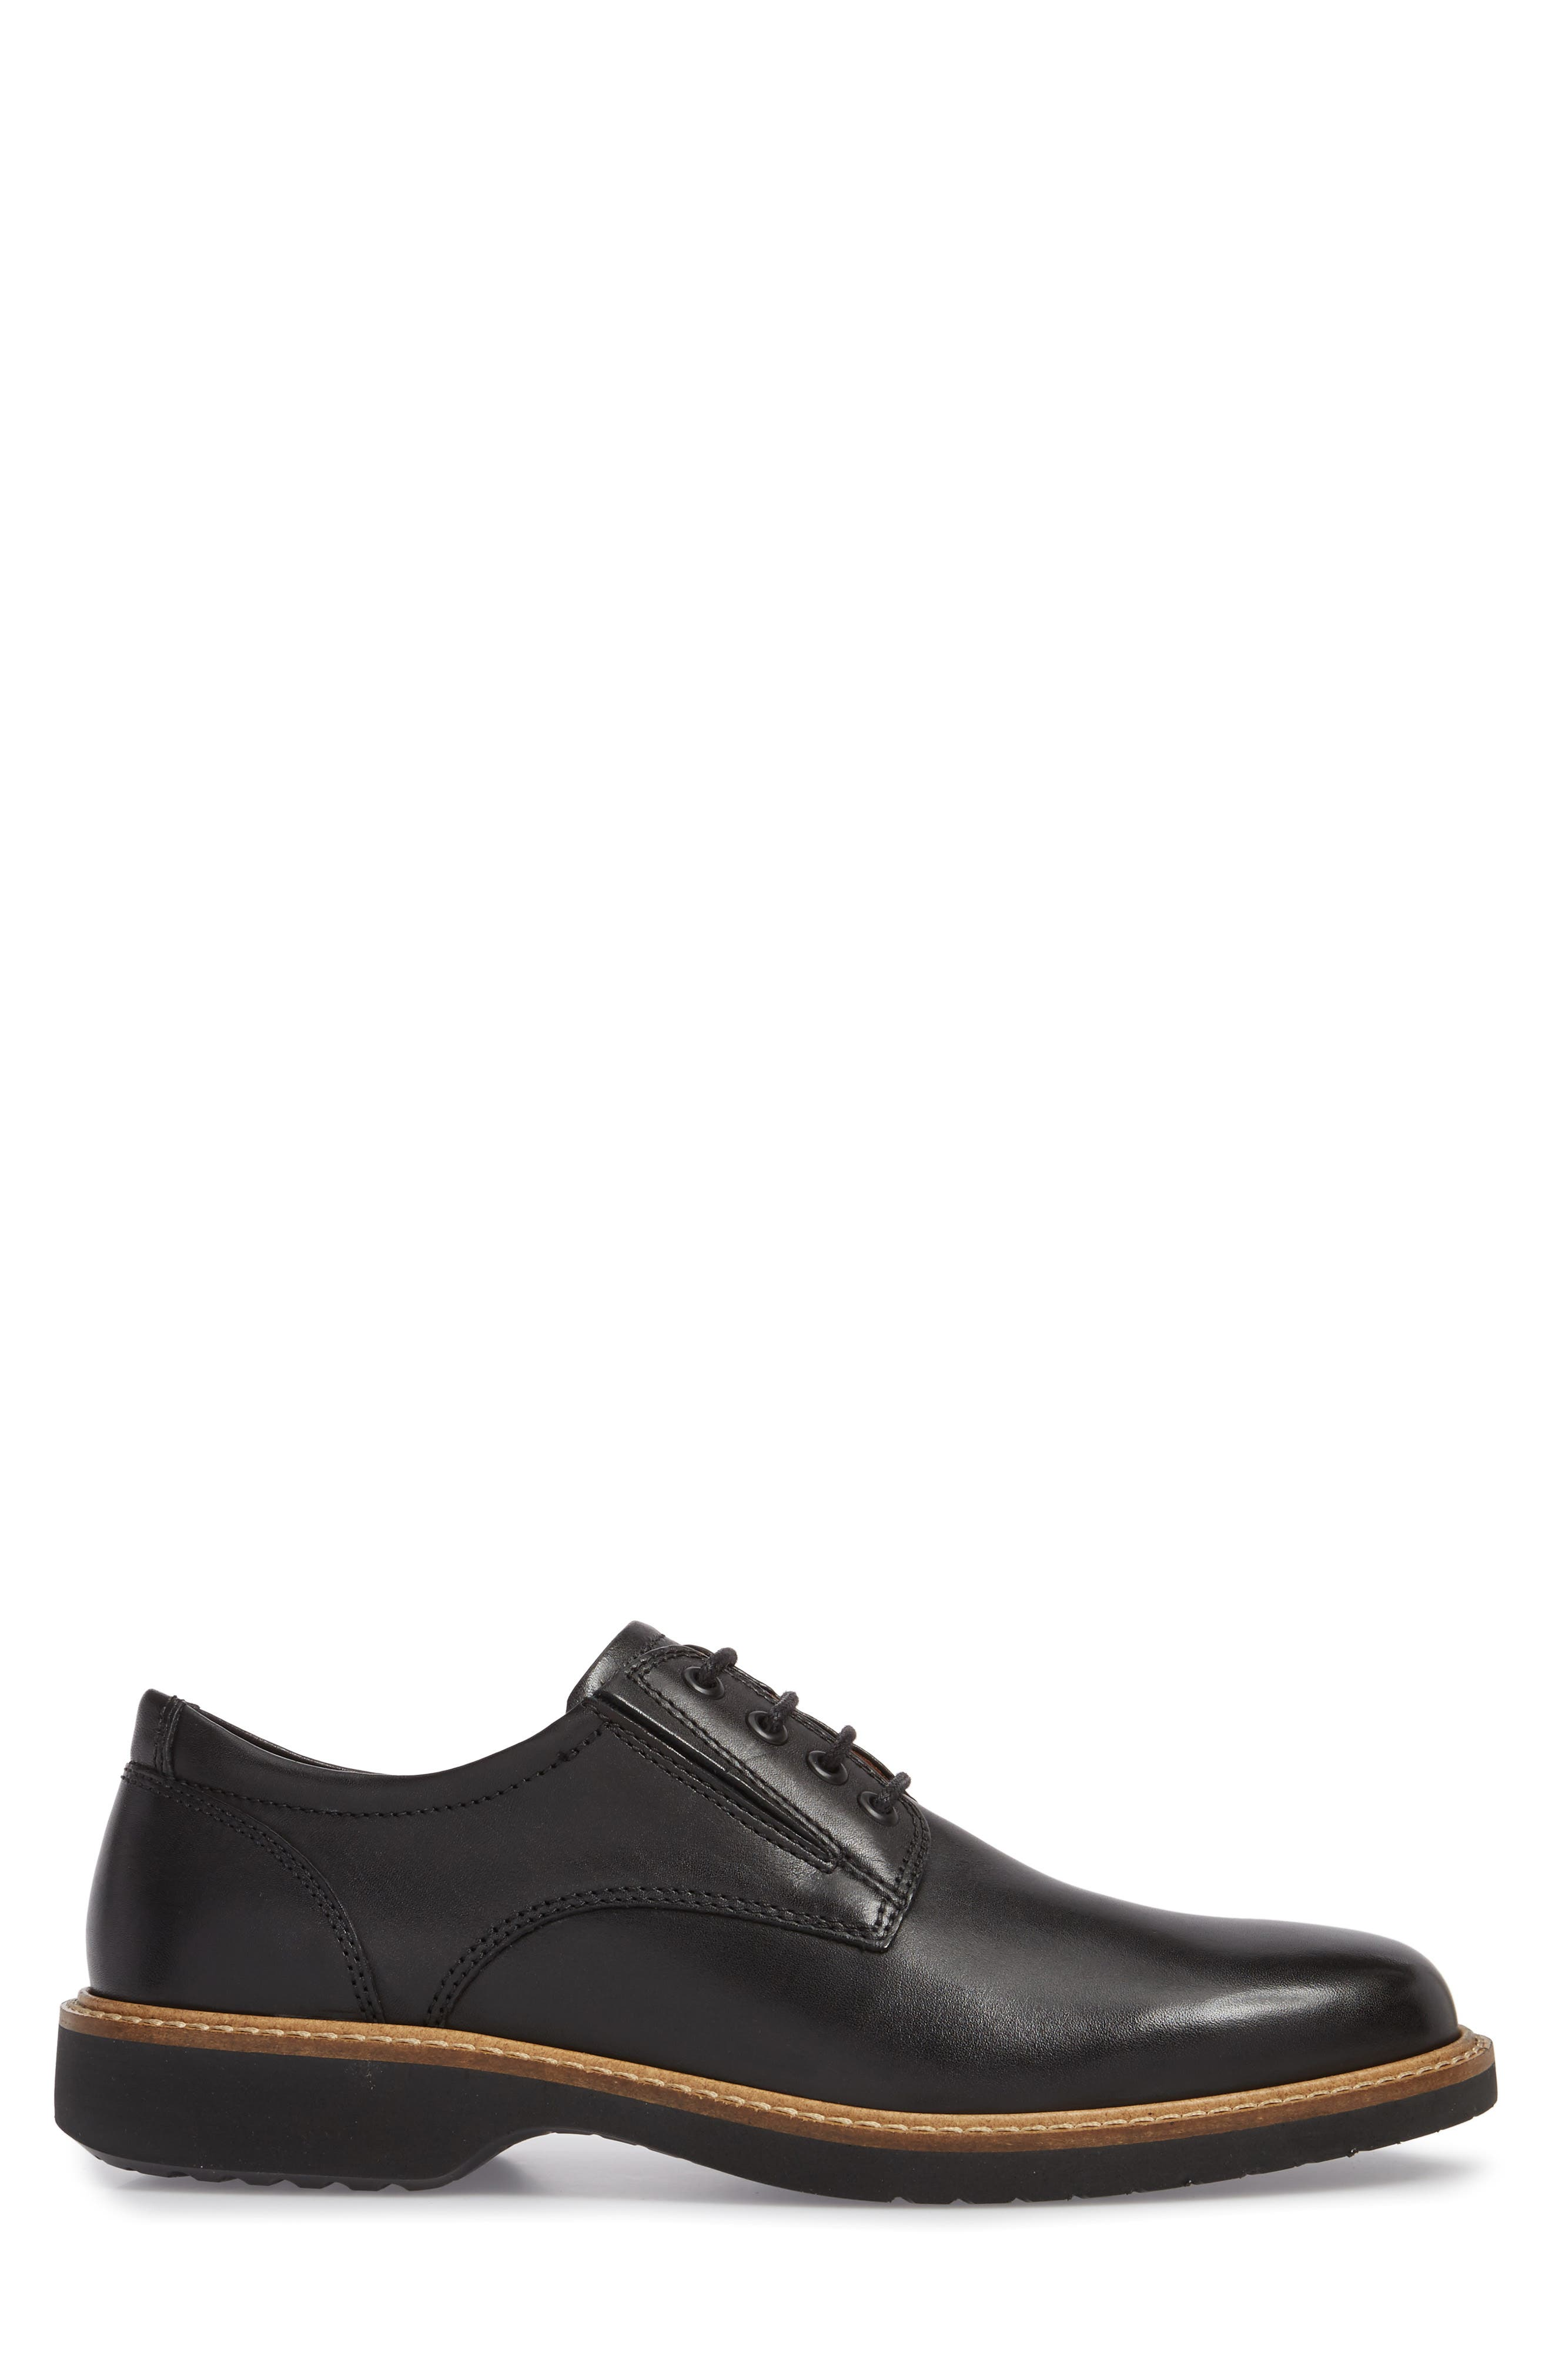 Ian Casual Plain Toe Derby,                             Alternate thumbnail 3, color,                             Black Leather